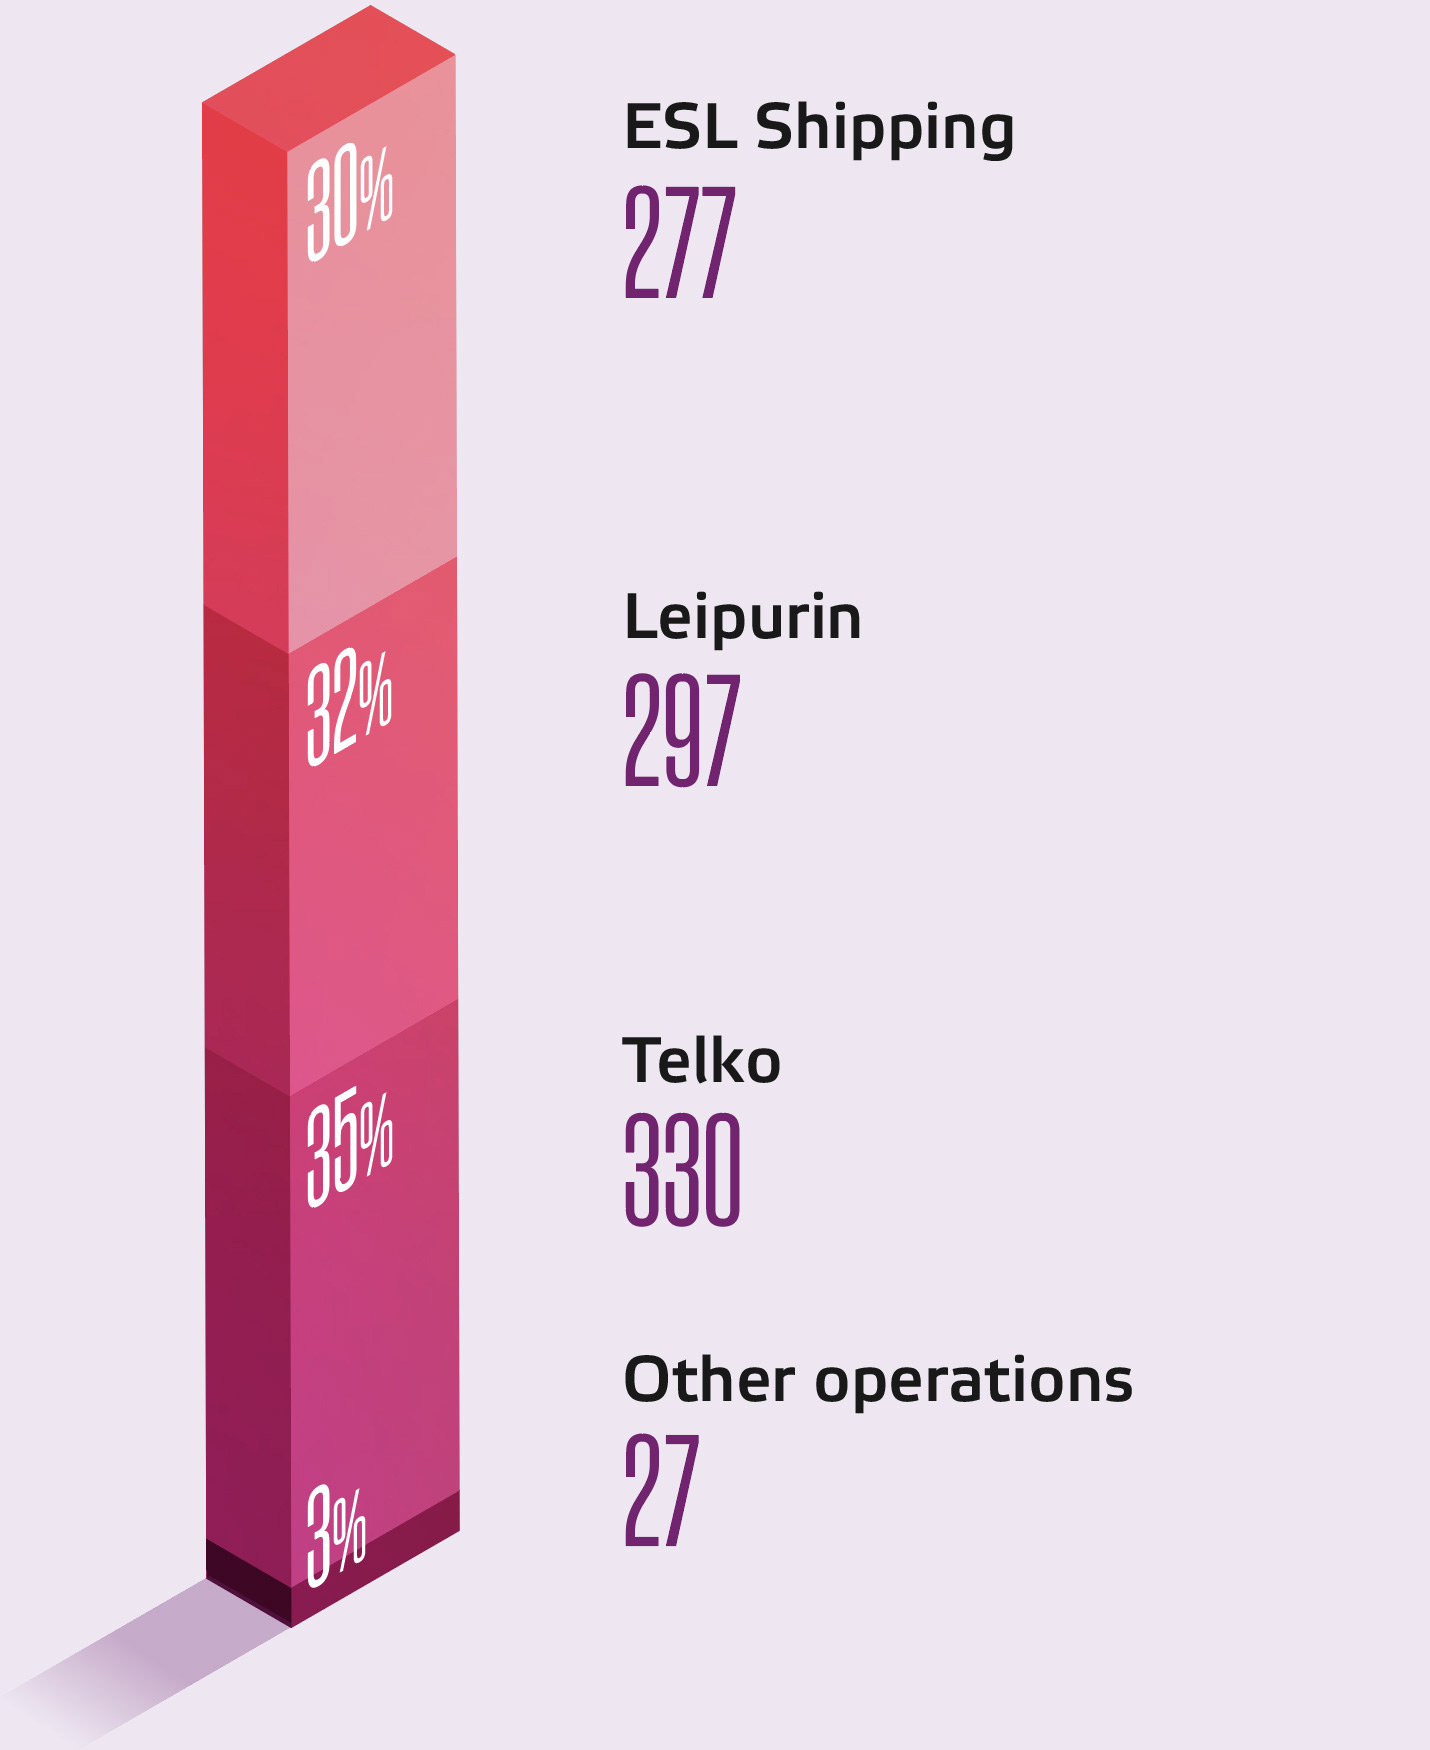 Personnel by segment: ESL Shipping 337   Leipurin 297   Telko 330   Other activity 27